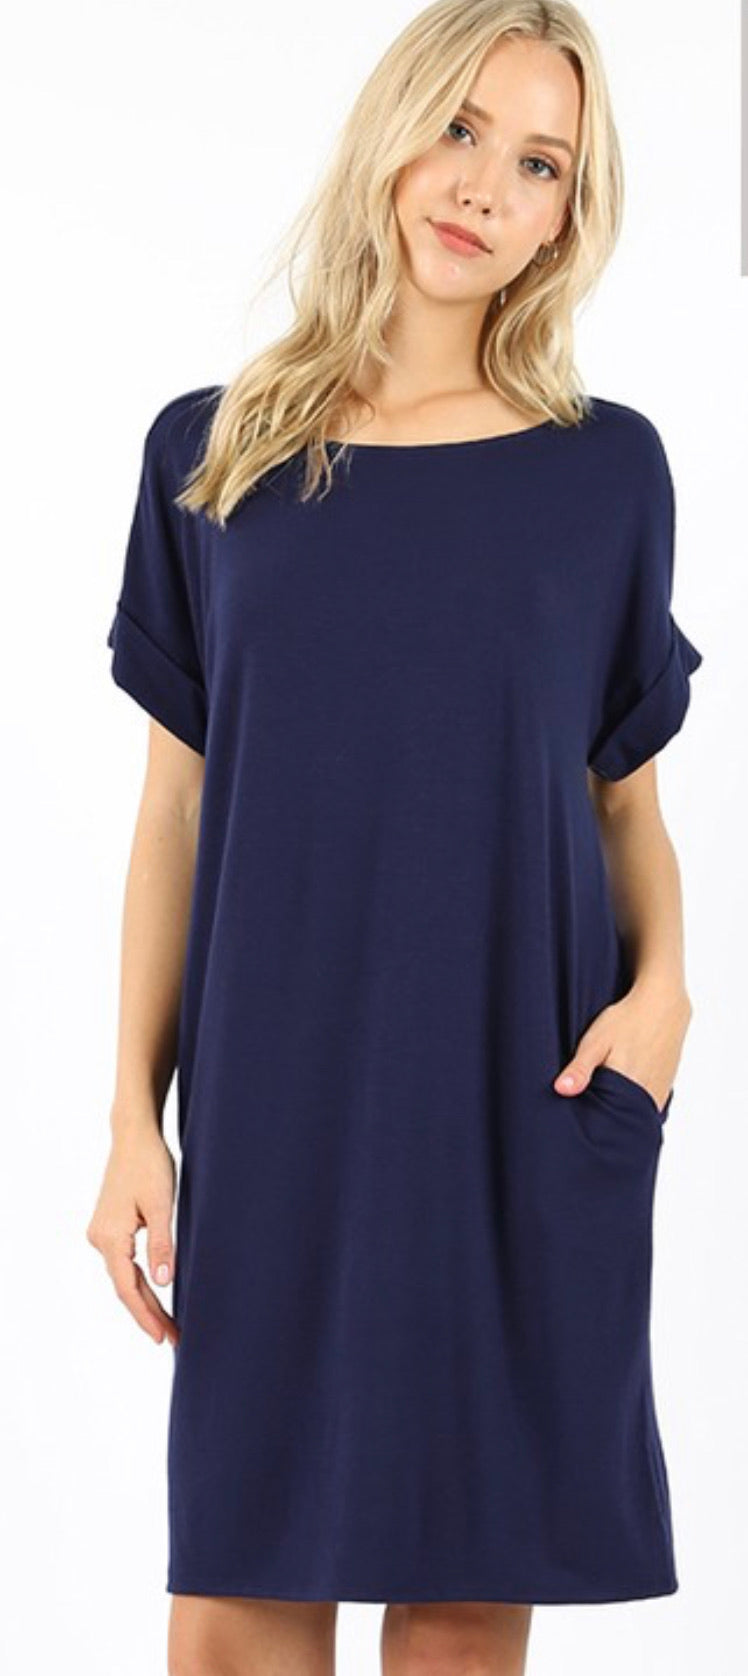 Quincy Shift Dress - (2 Colors) Curvy